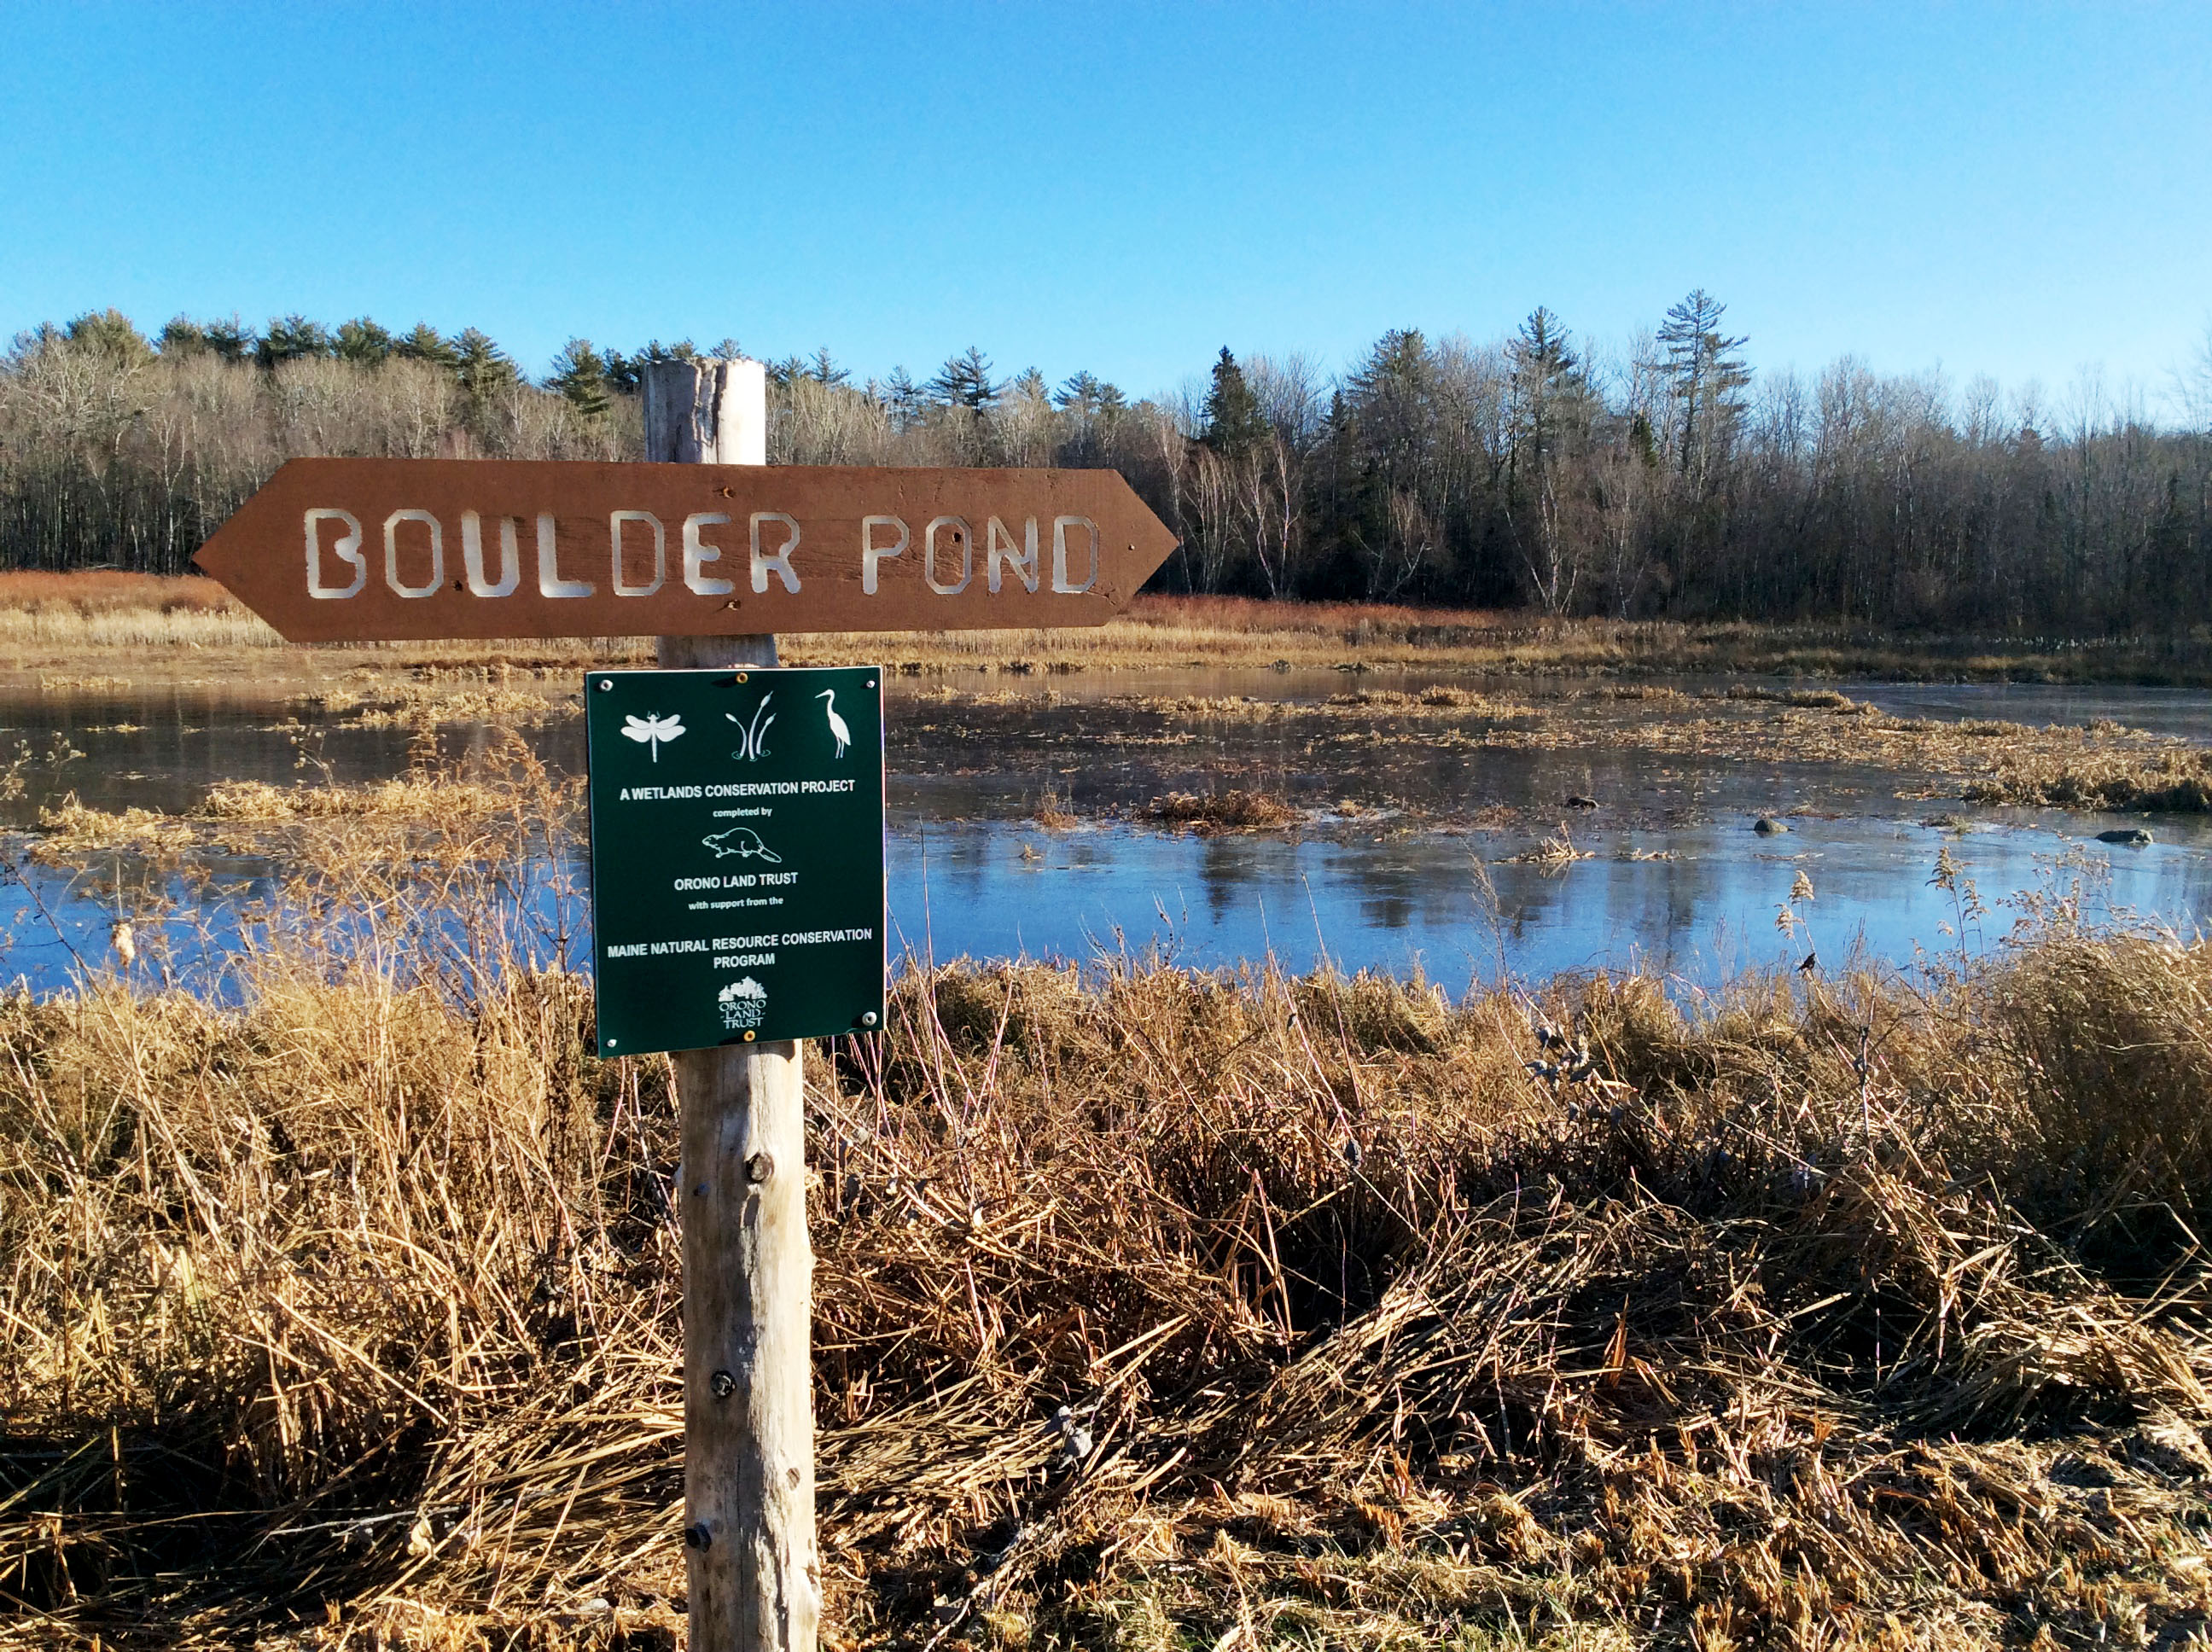 Boulder Pond on Taylor Road in Orono is the site of a wetlands remediation project undertaken by OLT with state and local support. A series of ponds in this area af-ford opportunities for all-seasons birding and winter ice-skating.